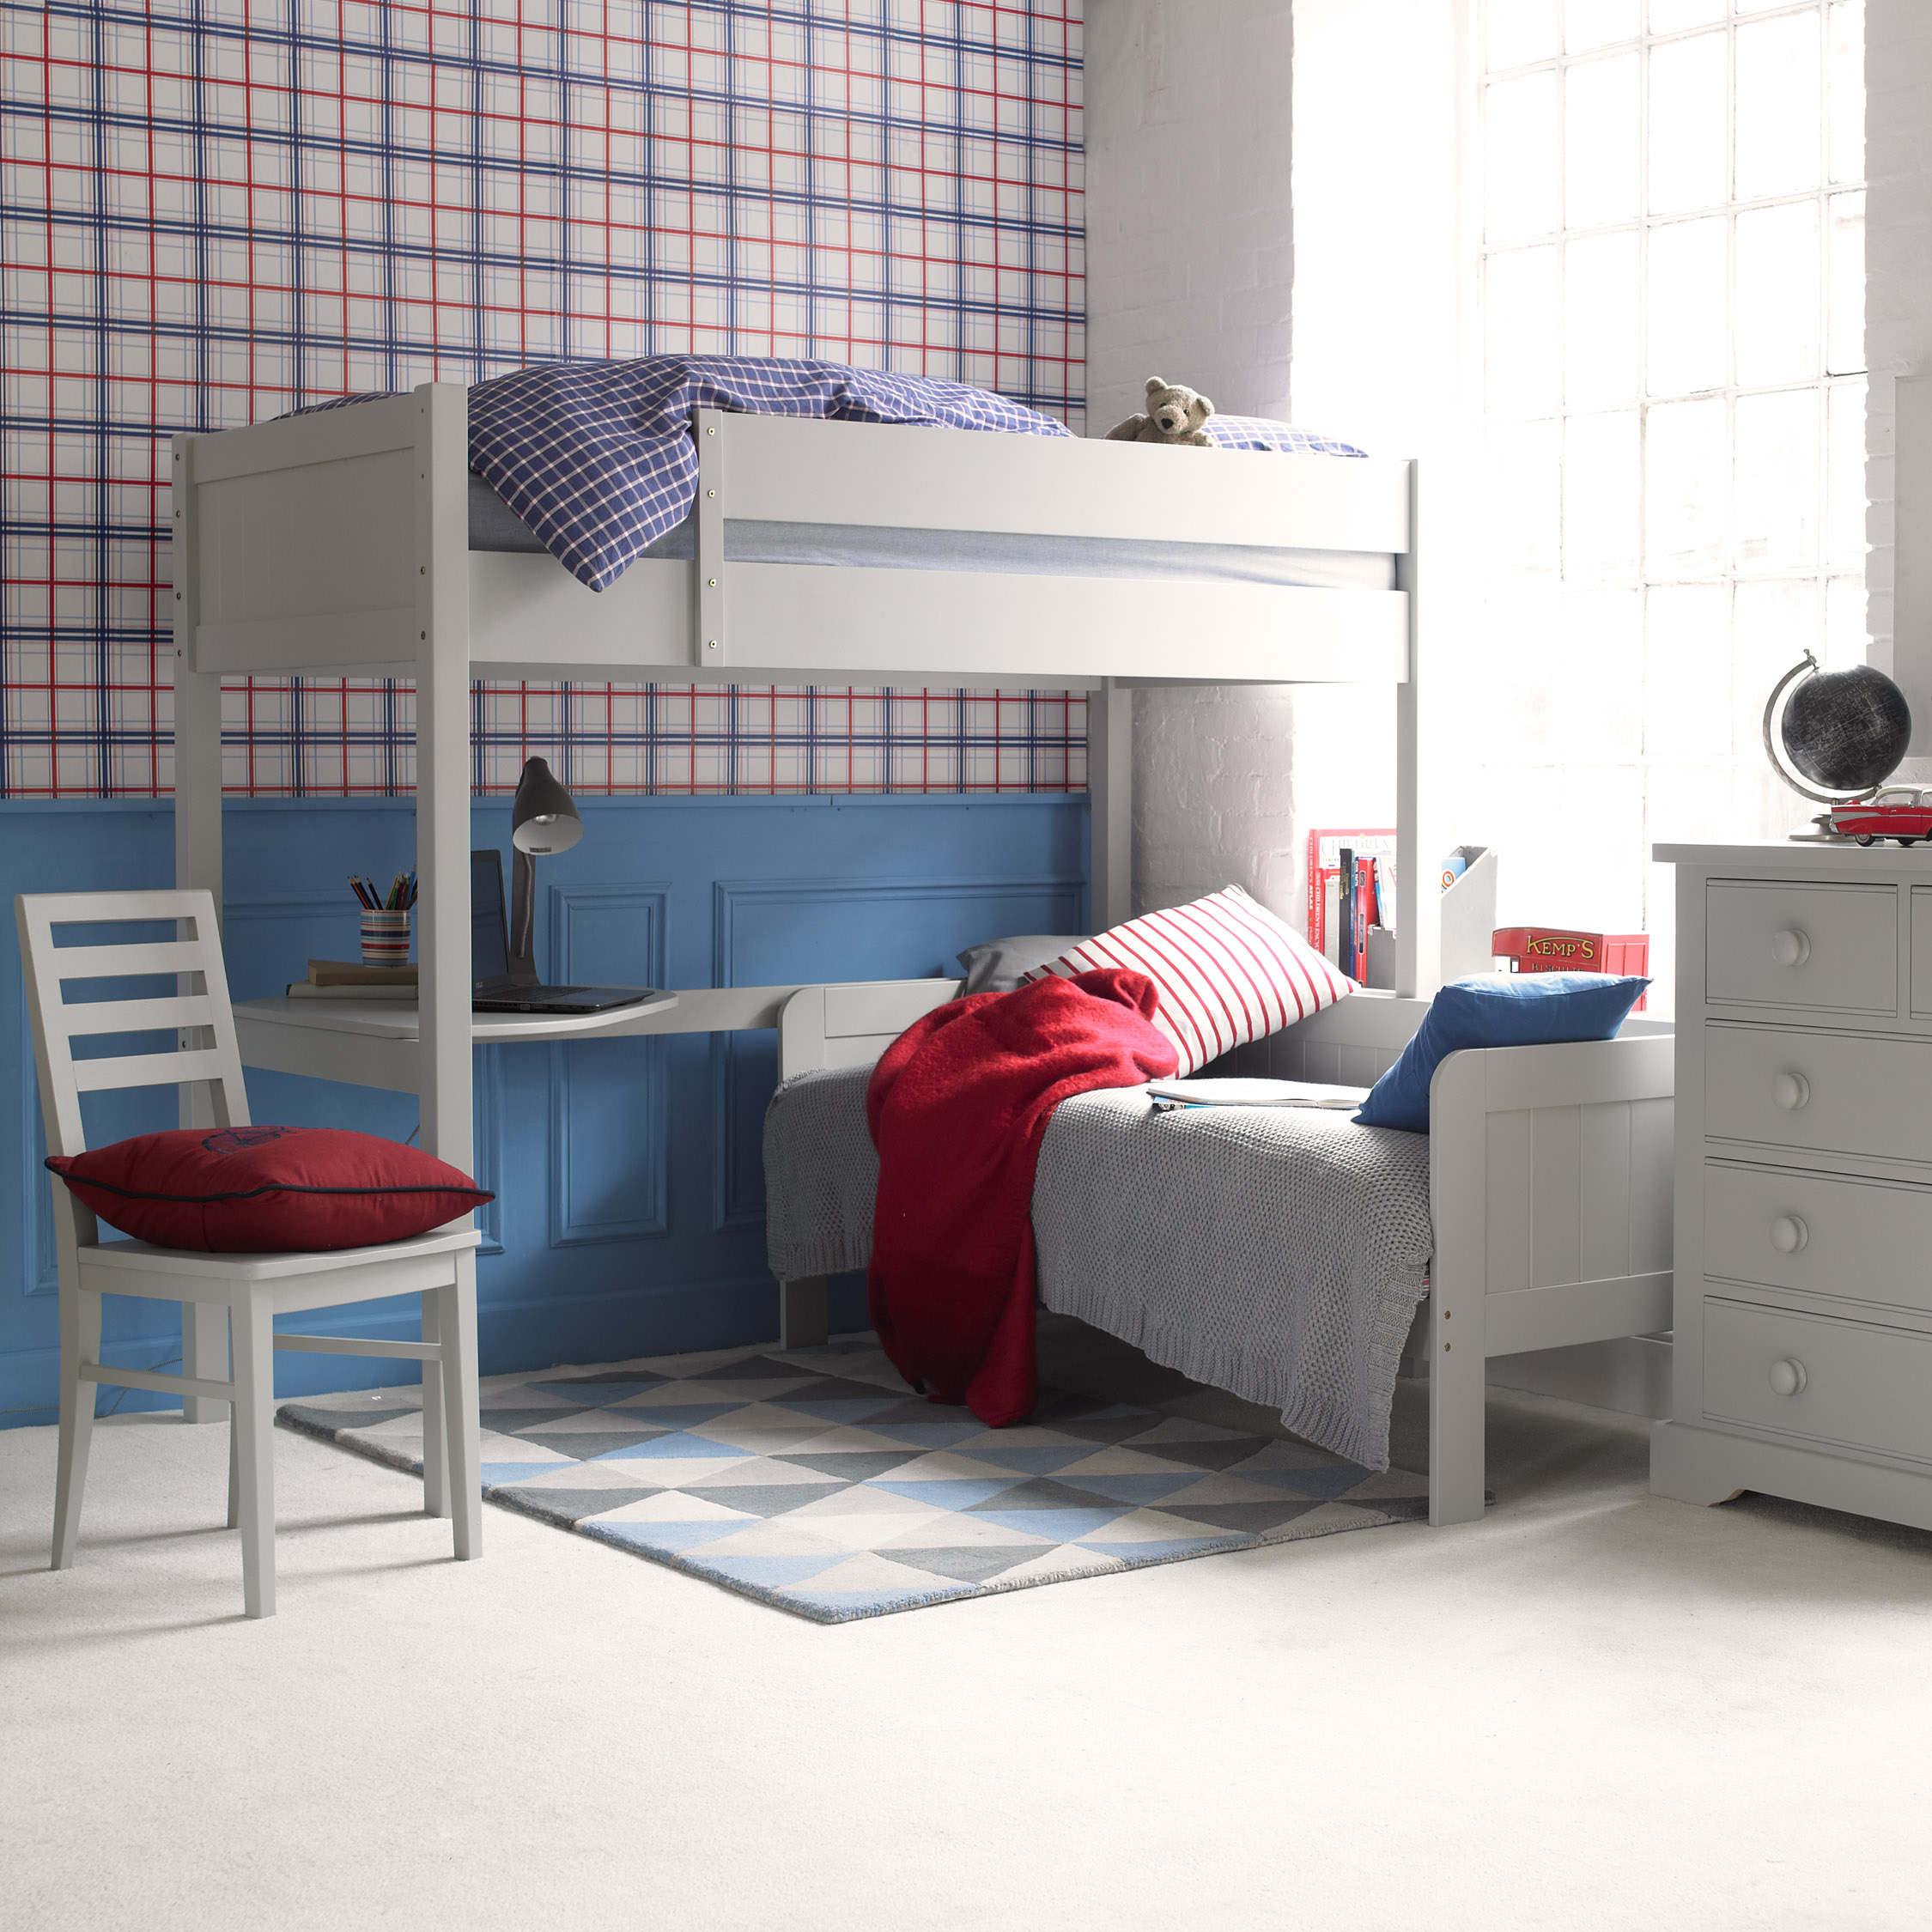 Fargo Highsleeper Bed with Daybed & Corner Desk - Farleigh Grey by Little Folks